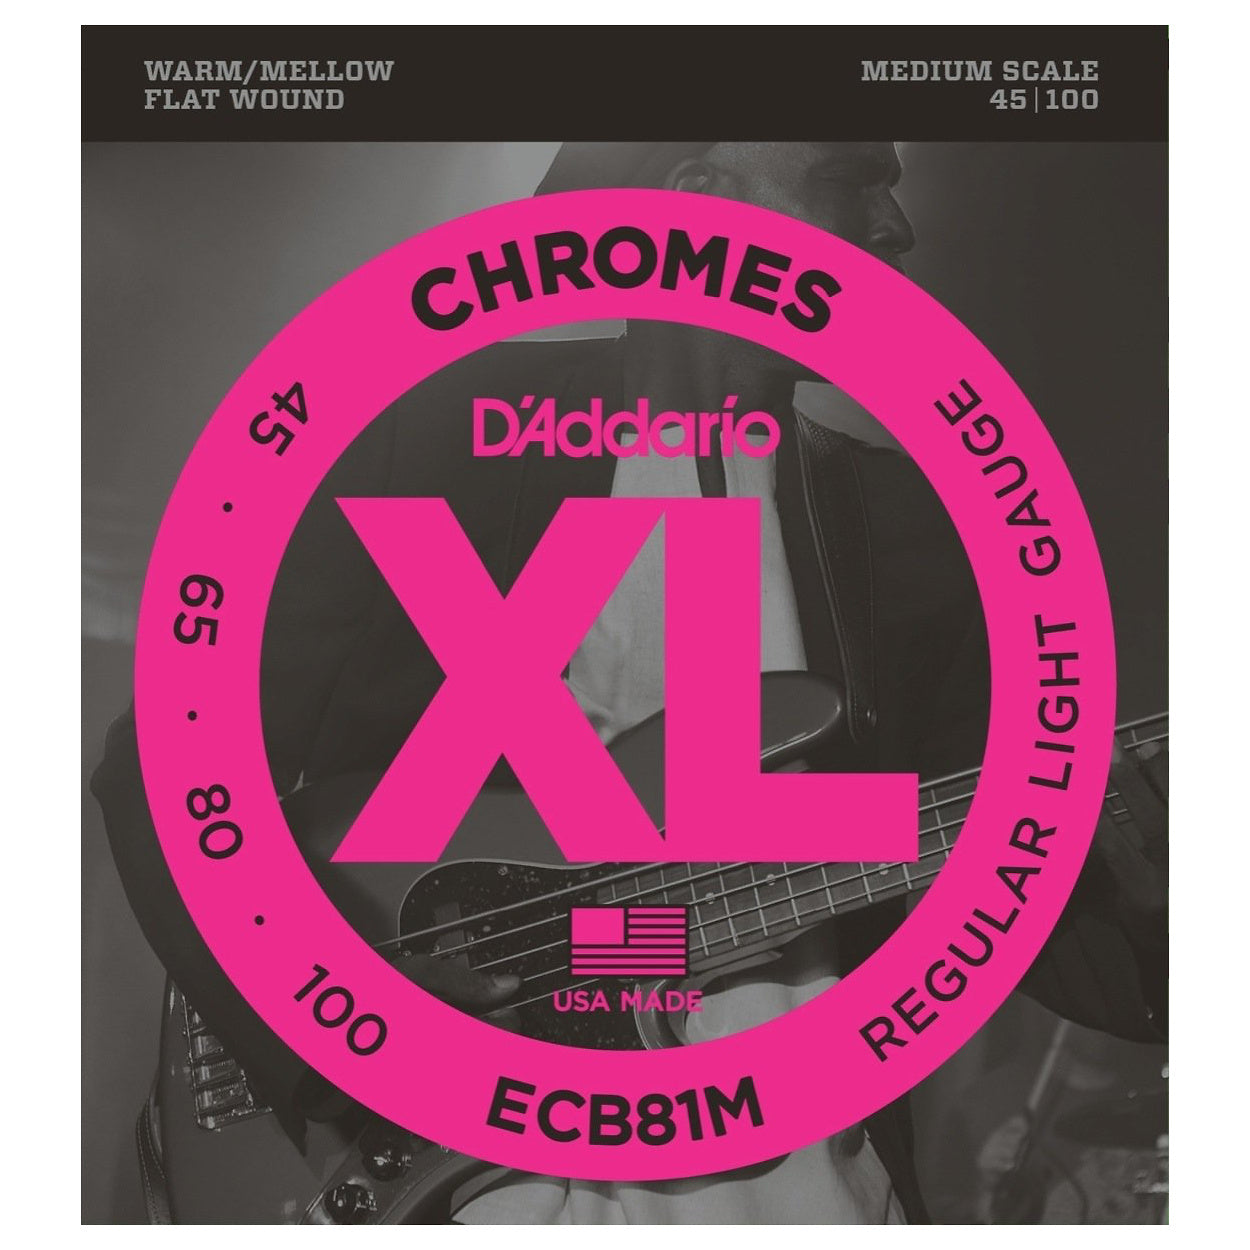 D'Addario ECB81M Chromes Flatwound Bass String (Regular Light, Medium Scale)